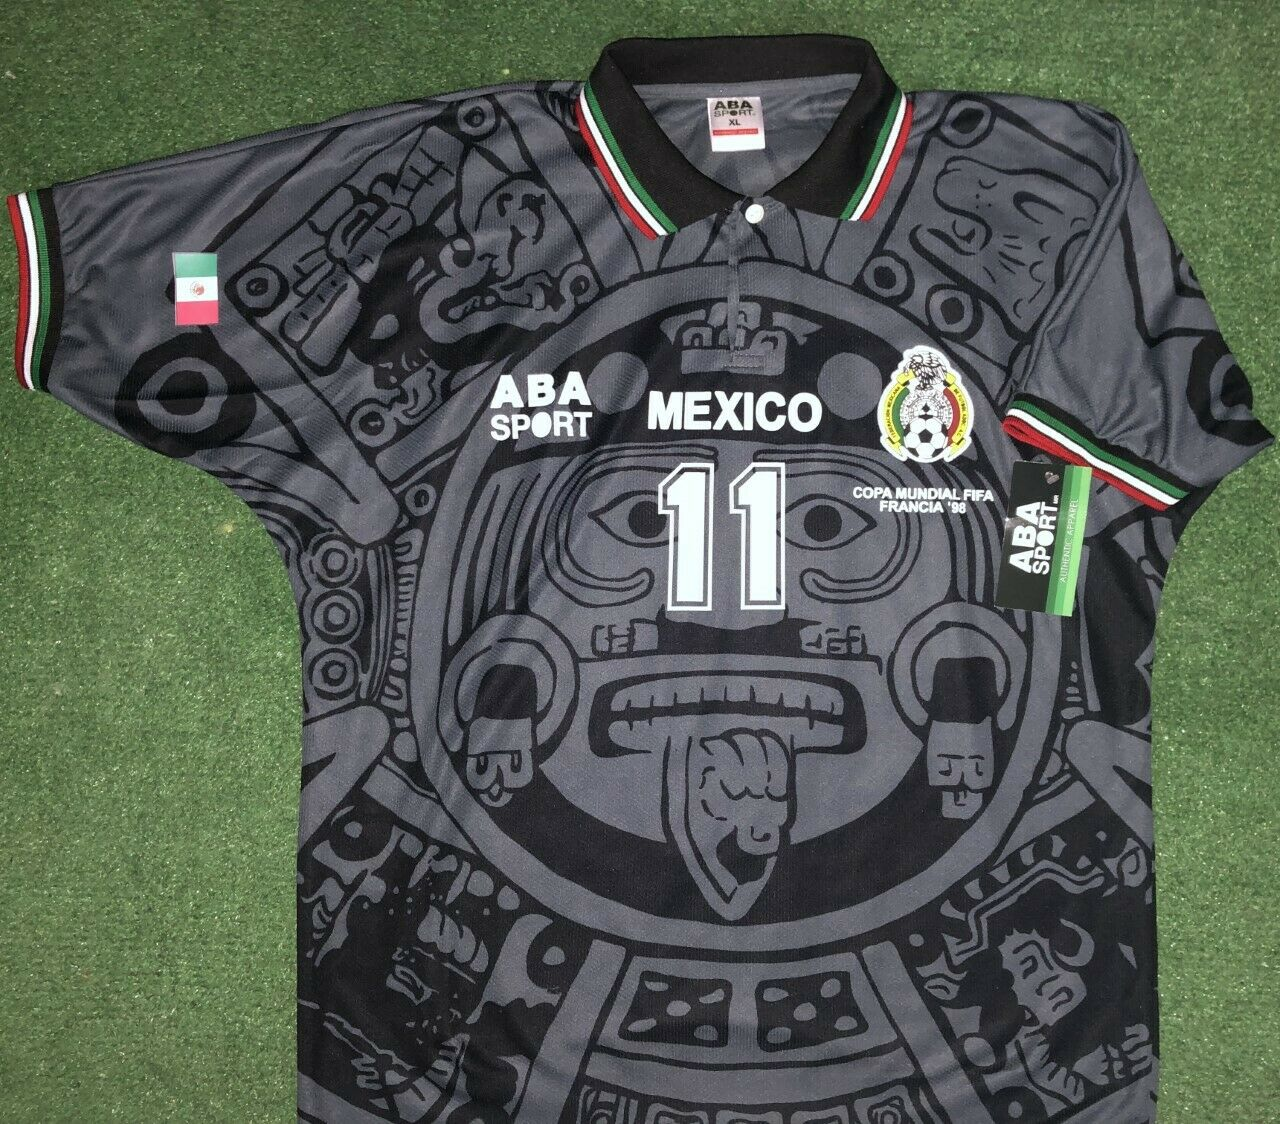 MEXICO 1998 CUAHOUTMOC B, GALA EDITION afmeting XL, AUTHENTISCHE SHIRT ABA SPORT